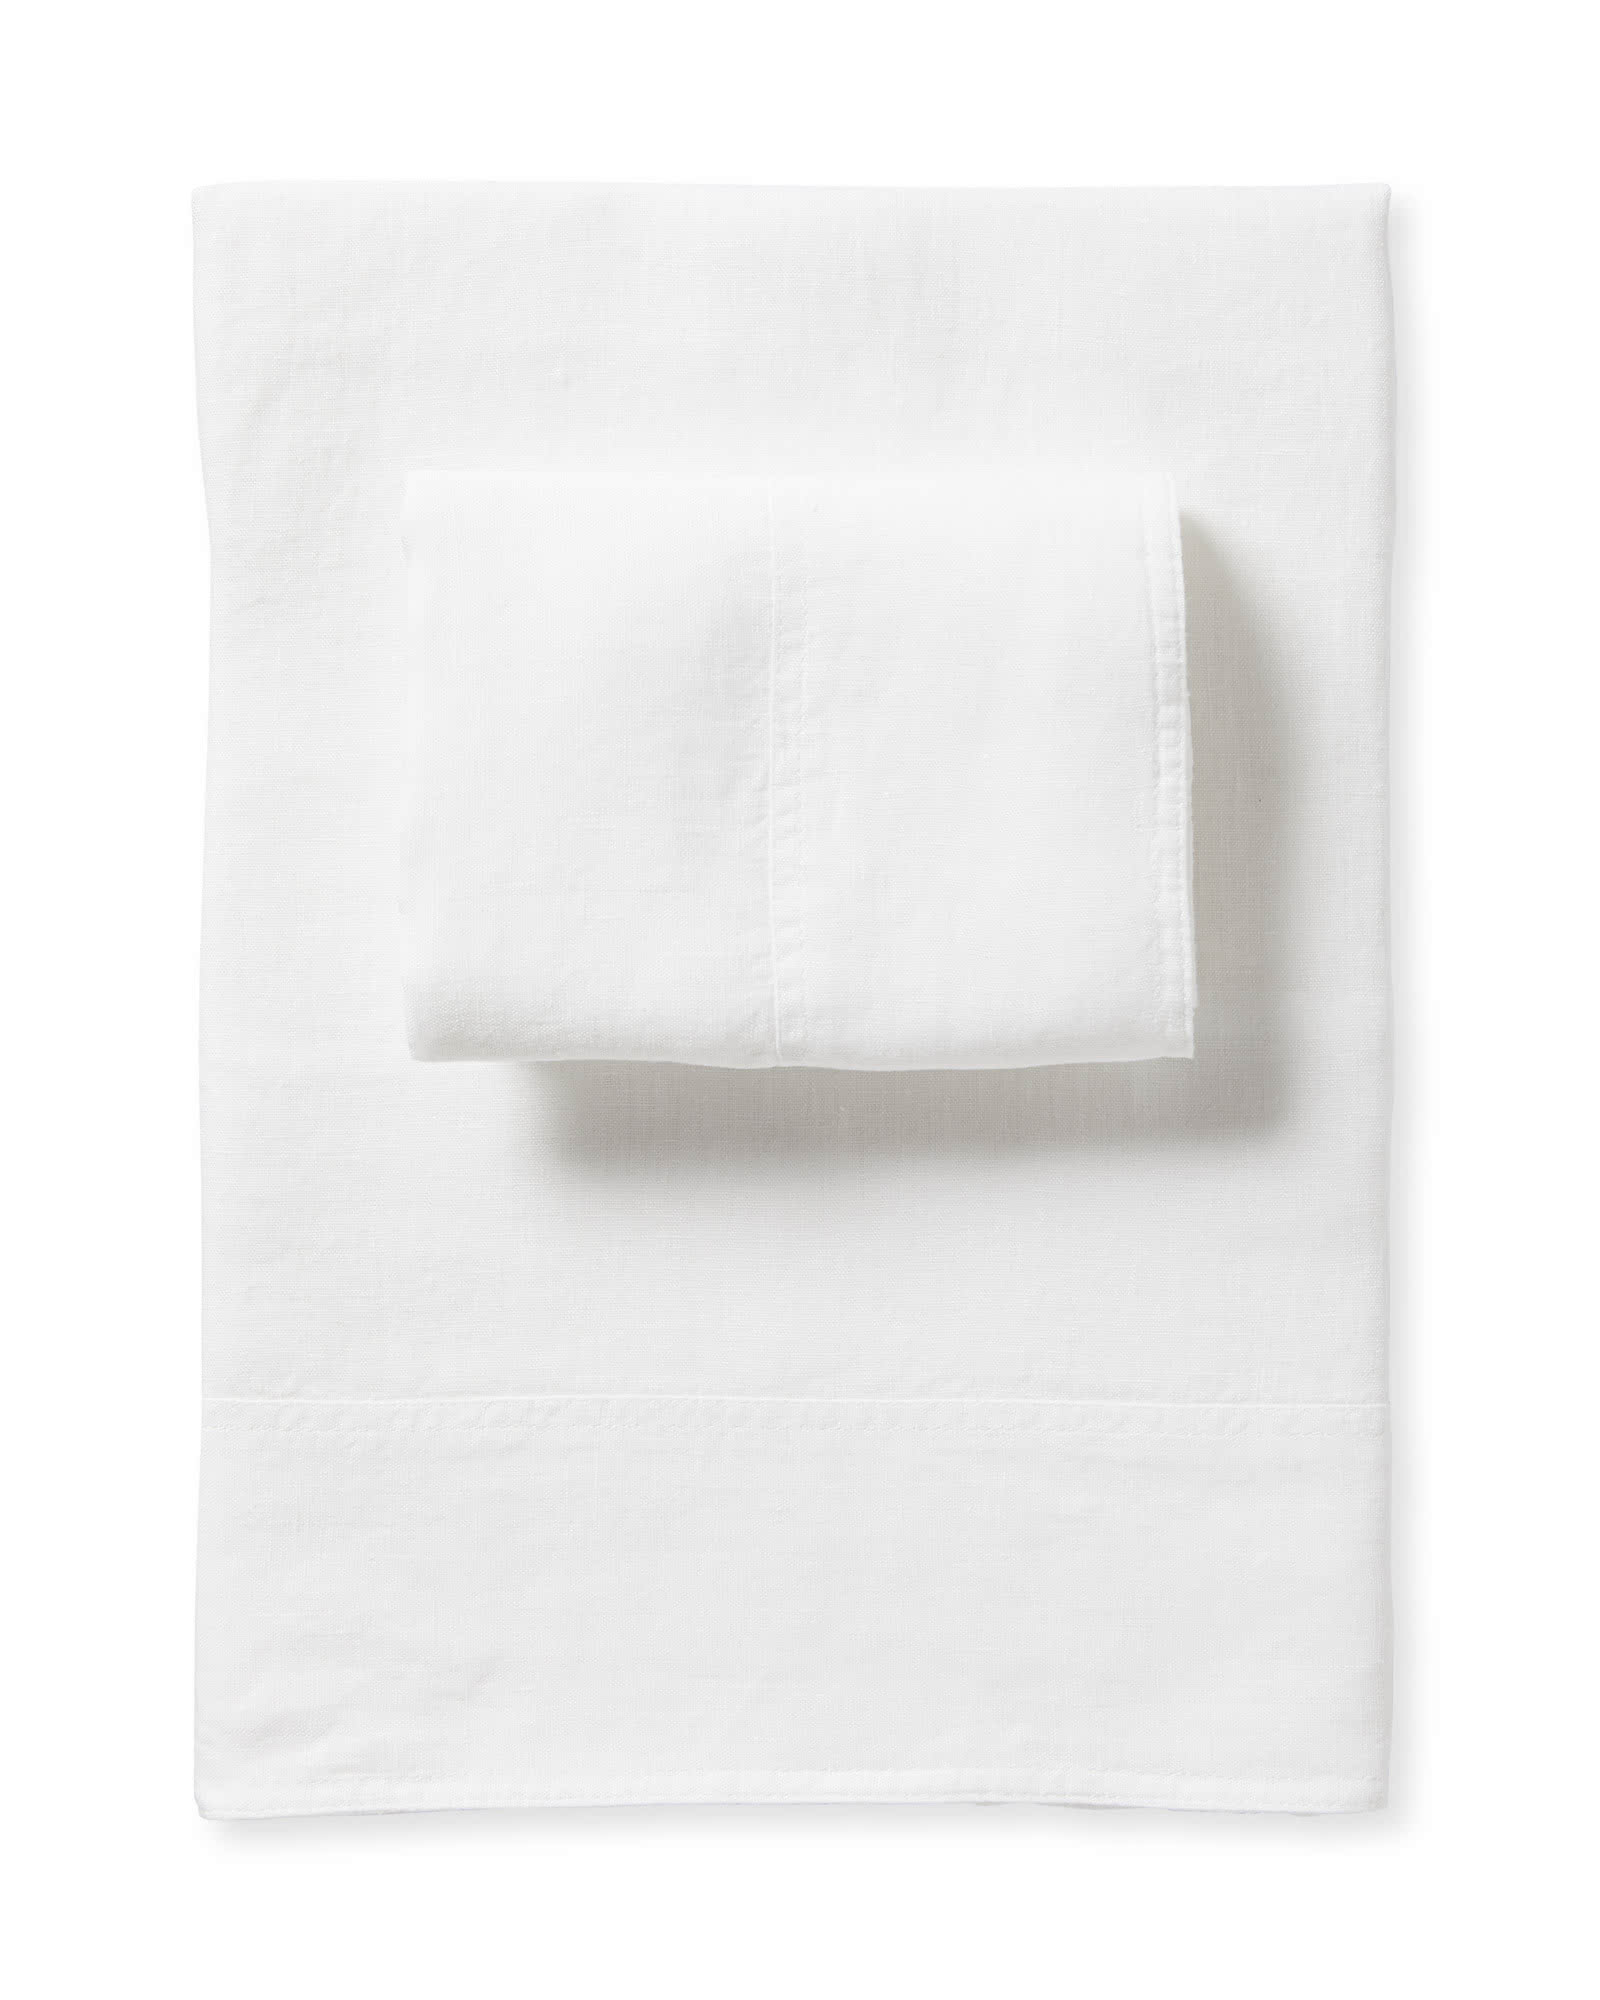 Positano Linen Sheet Set, White